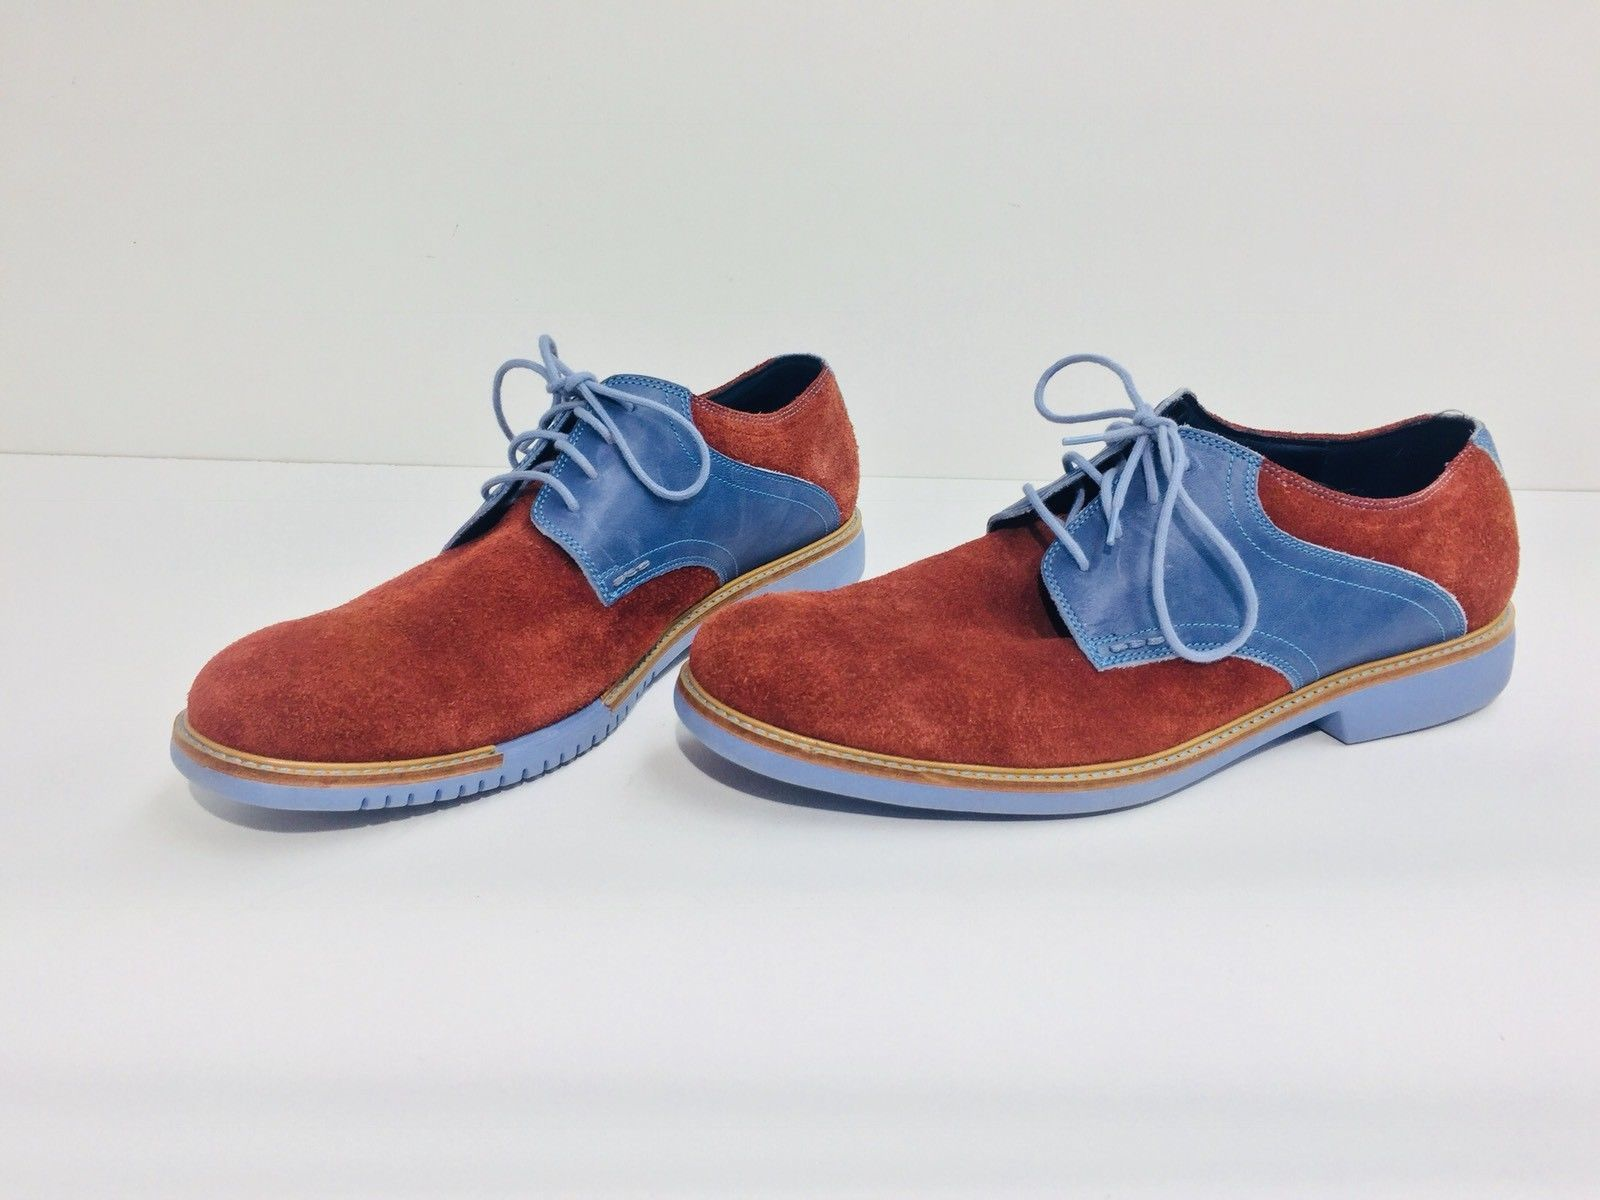 955fe9d169353 Stylish Cole Haan Men's Great Jones Saddle and 50 similar items